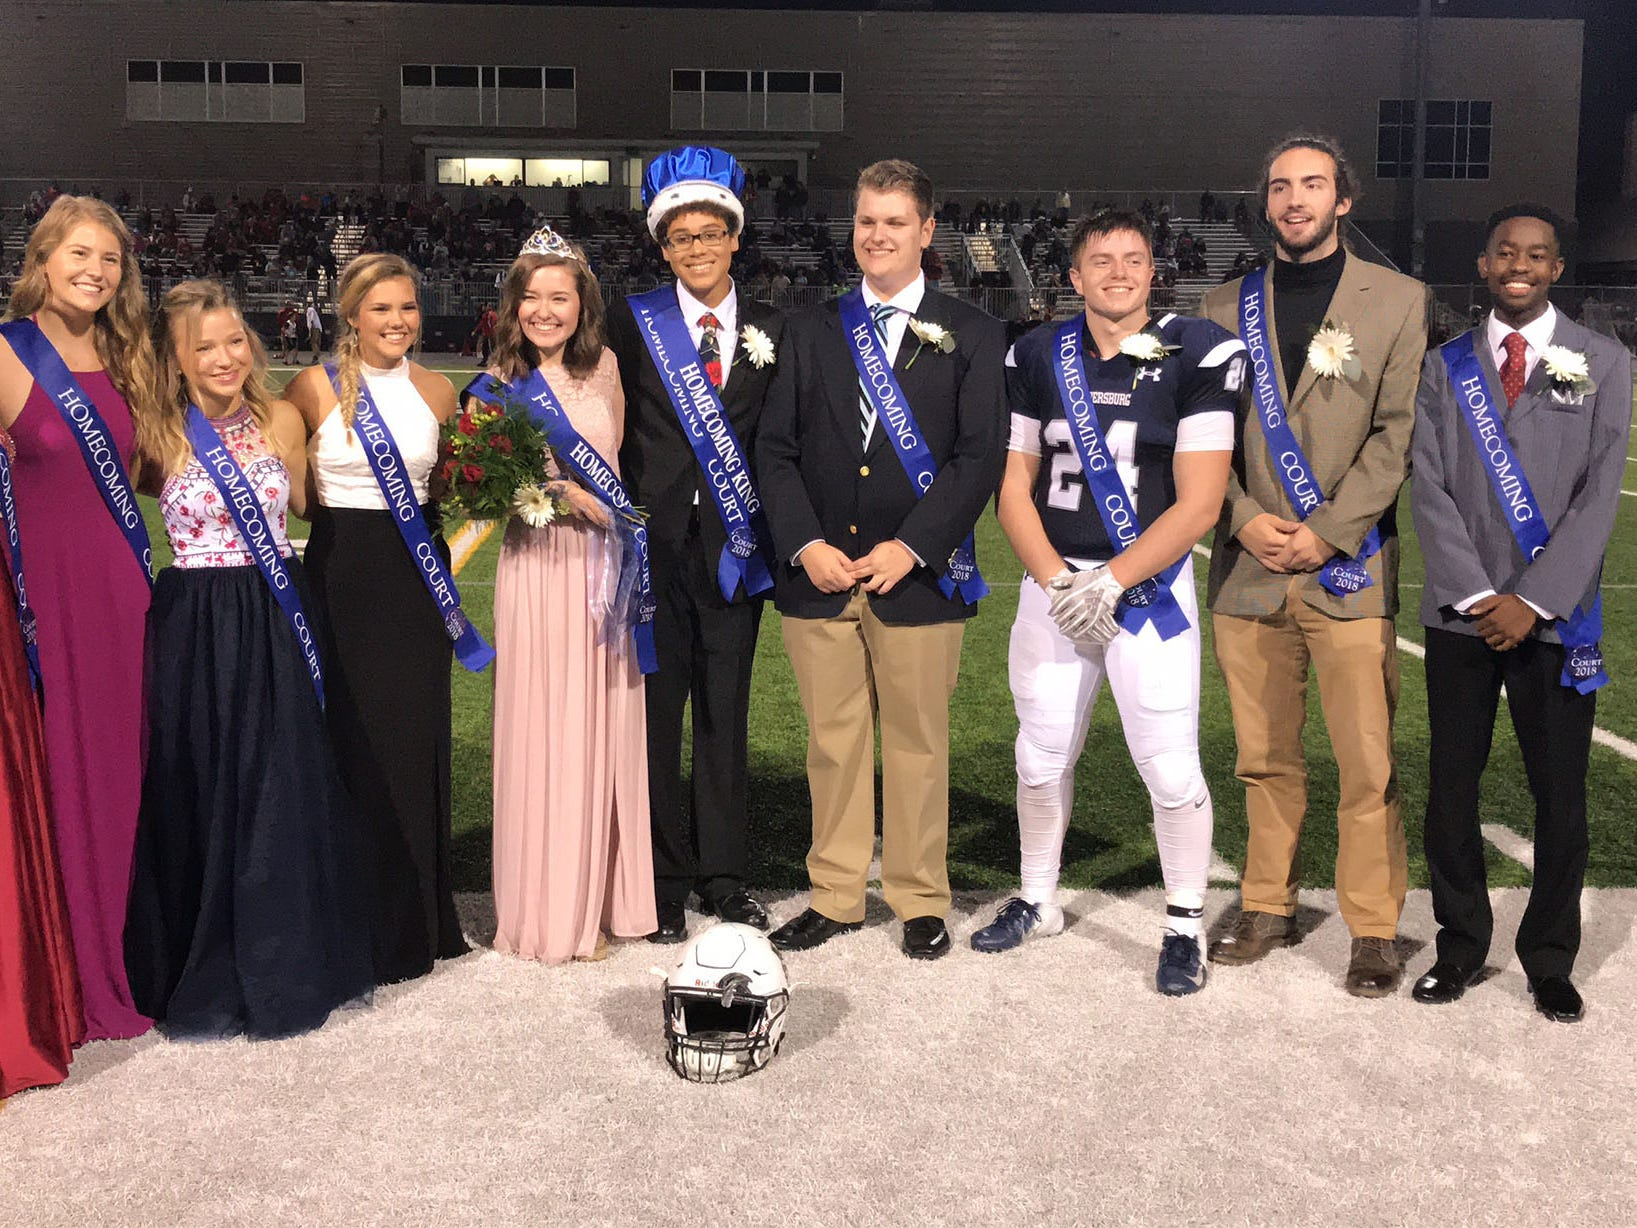 The homecoming court poses for photos. Chambersburg Trojans are 5-1 after a homecoming victory over Cumberland Valley 28-14 in PIAA football on Friday, Sept. 28, 2018.